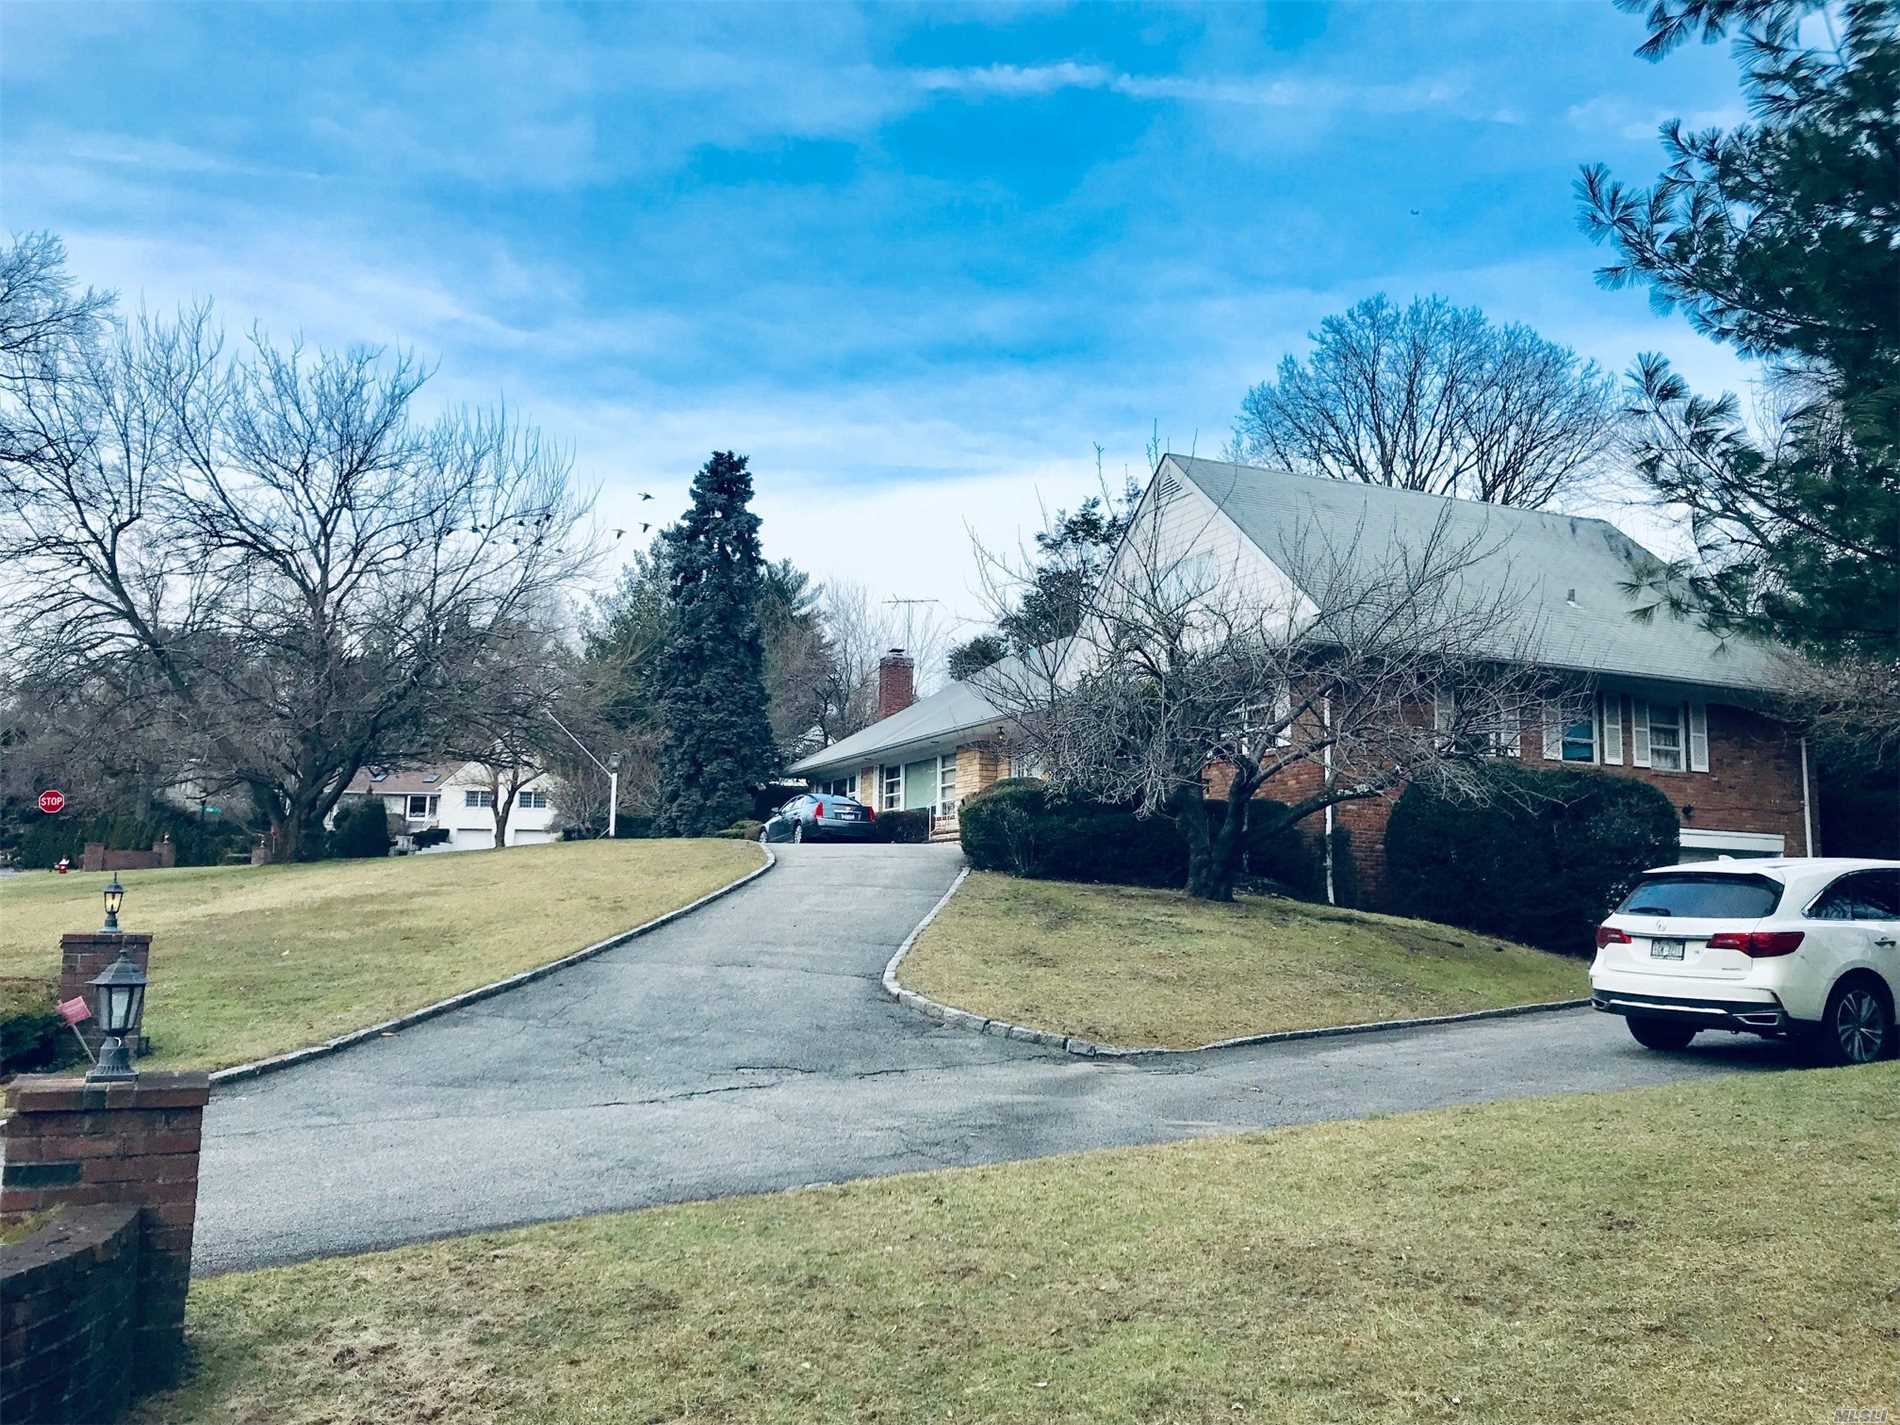 Large Extended Ranch With Wrap Around Driveway In One Of The Largest Lots In Great Neck Estates. A Short Walk To Pond With Tranquil Setting. Prestigious Village Features Its Own Police & Waterfront Park With Pool & Tennis. Option To Attend Gn North Or South Hs. Easy To Expand To Luxury Mansion. Builder Delighted.